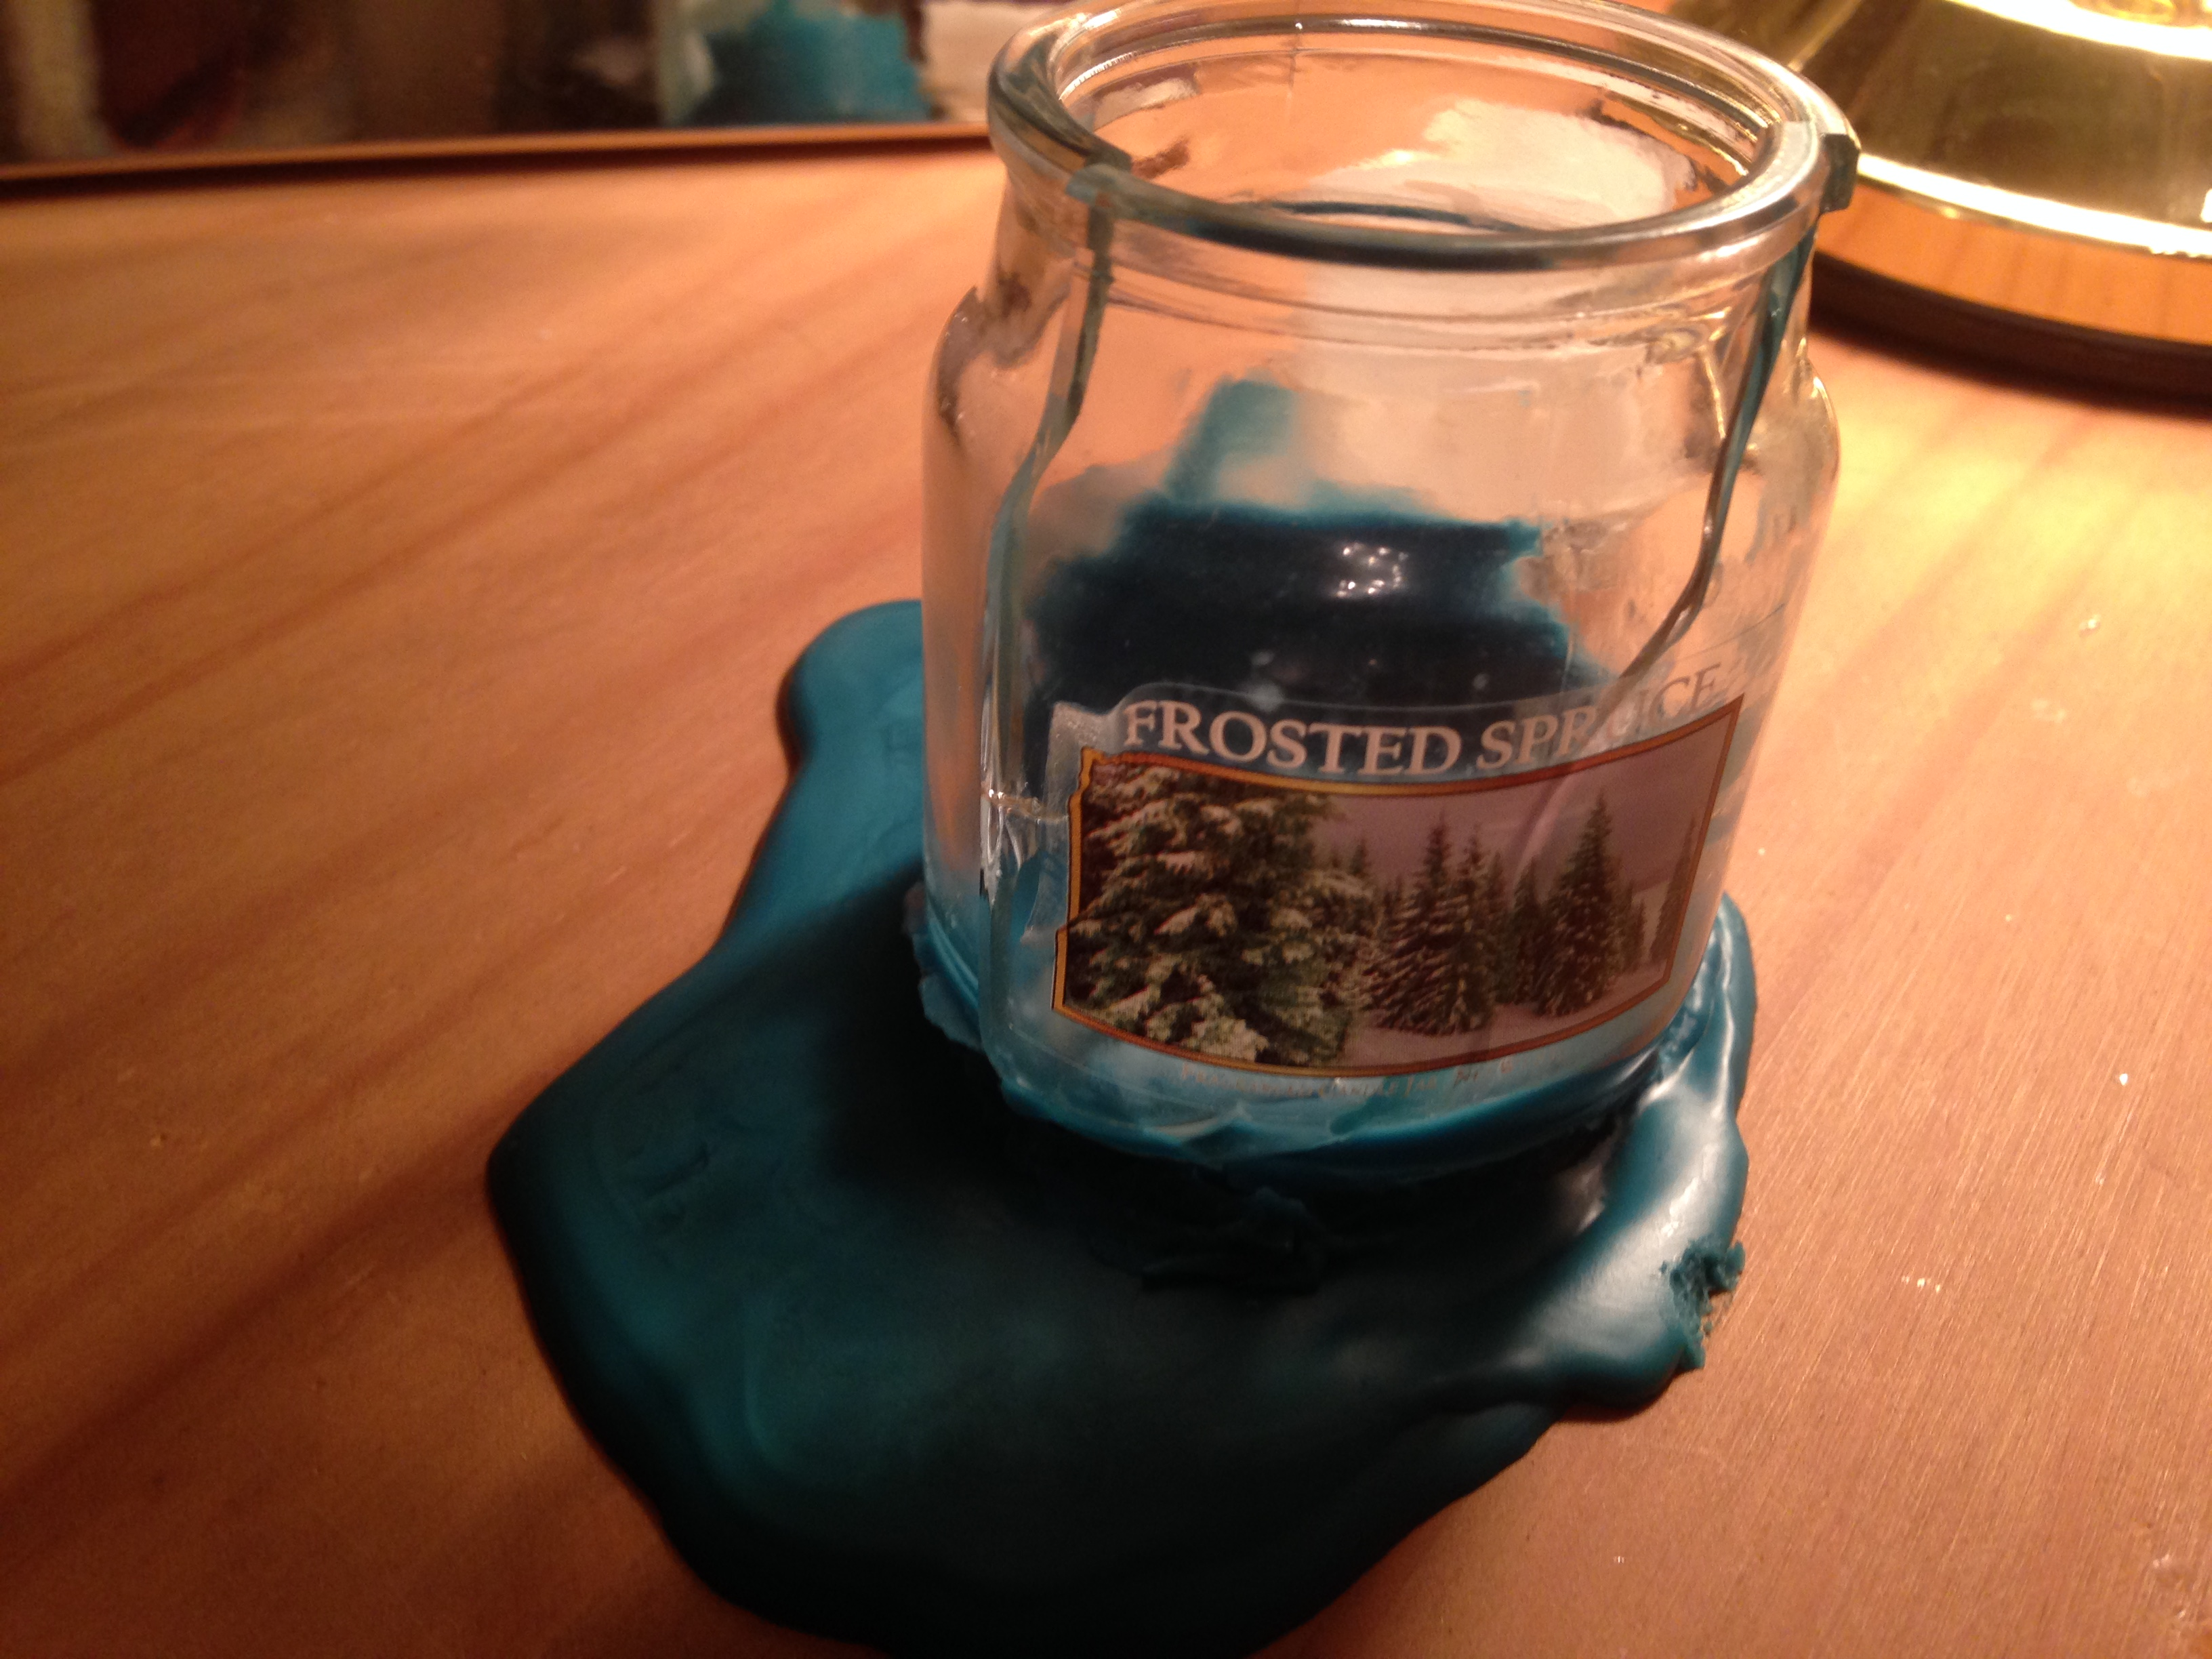 Pack Of Three Candle Jars Code 25409185 When Light Glass Broke And Hot Wax Went Everywhere These Are Dangerous Also Ruined My Table